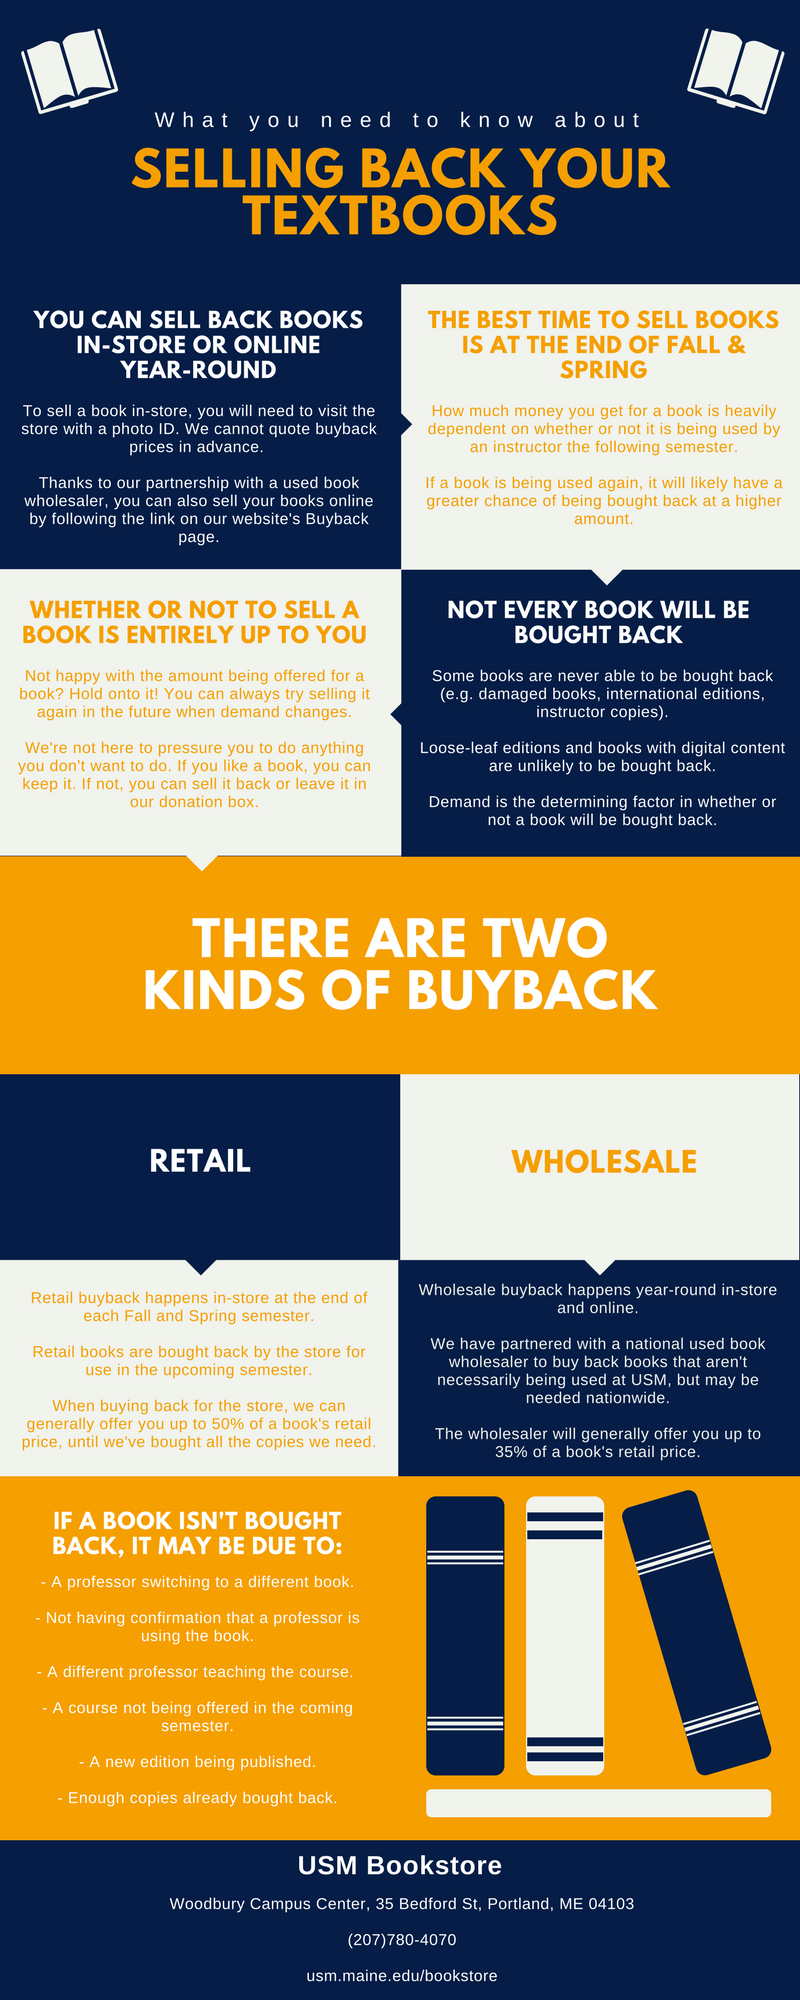 What You Need to Know About Selling Your Books